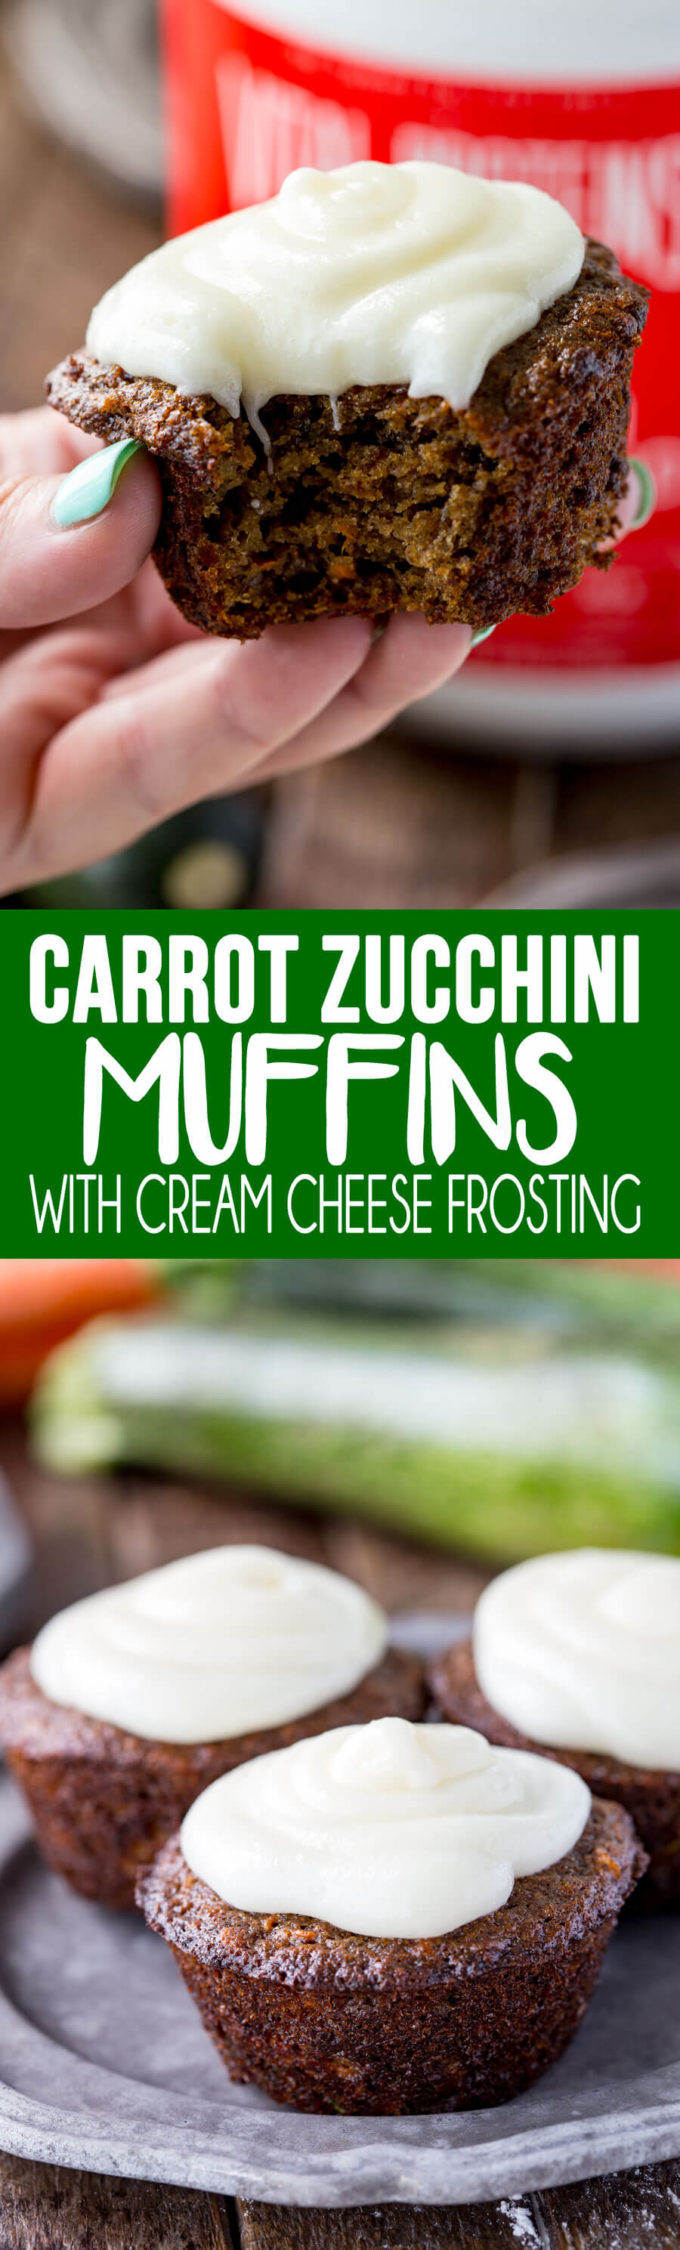 Carrot Zucchini Muffins with a cream cheese frosting that is optional, but makes it even that much more awesome